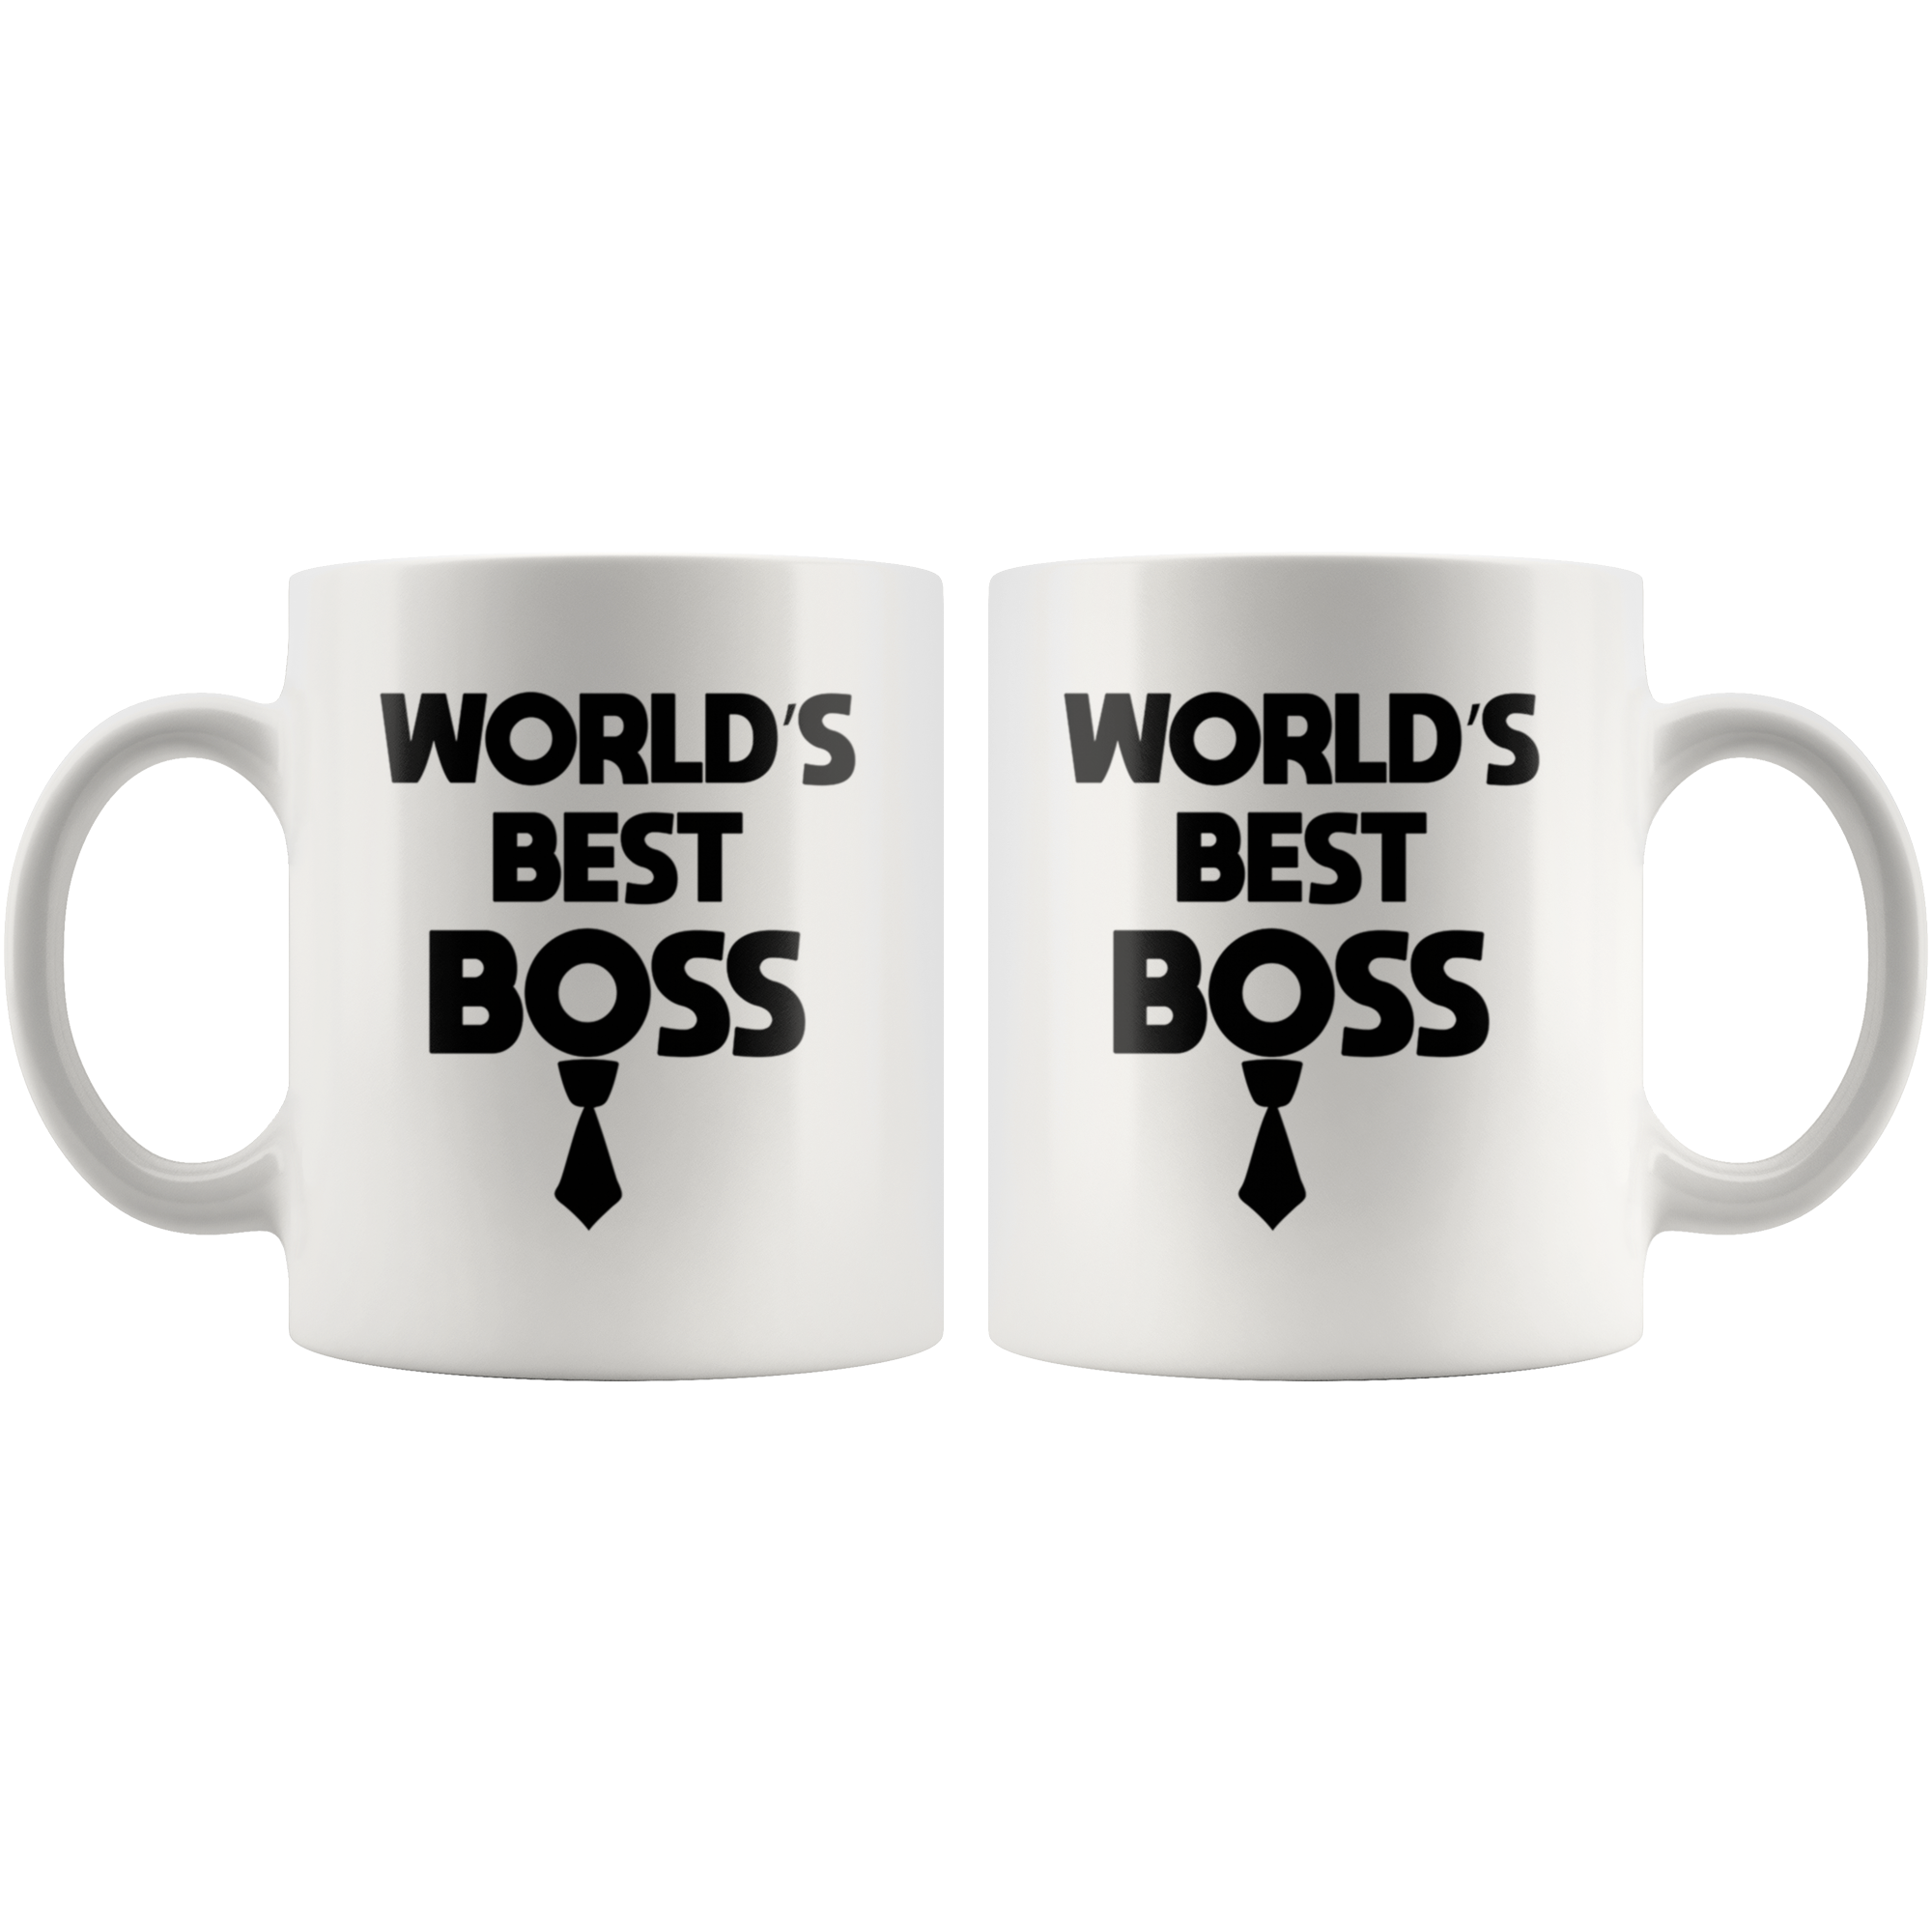 Worlds Best Boss Mug-Funny Gift Ideas for Boss-Funny The Office Coffee Mug